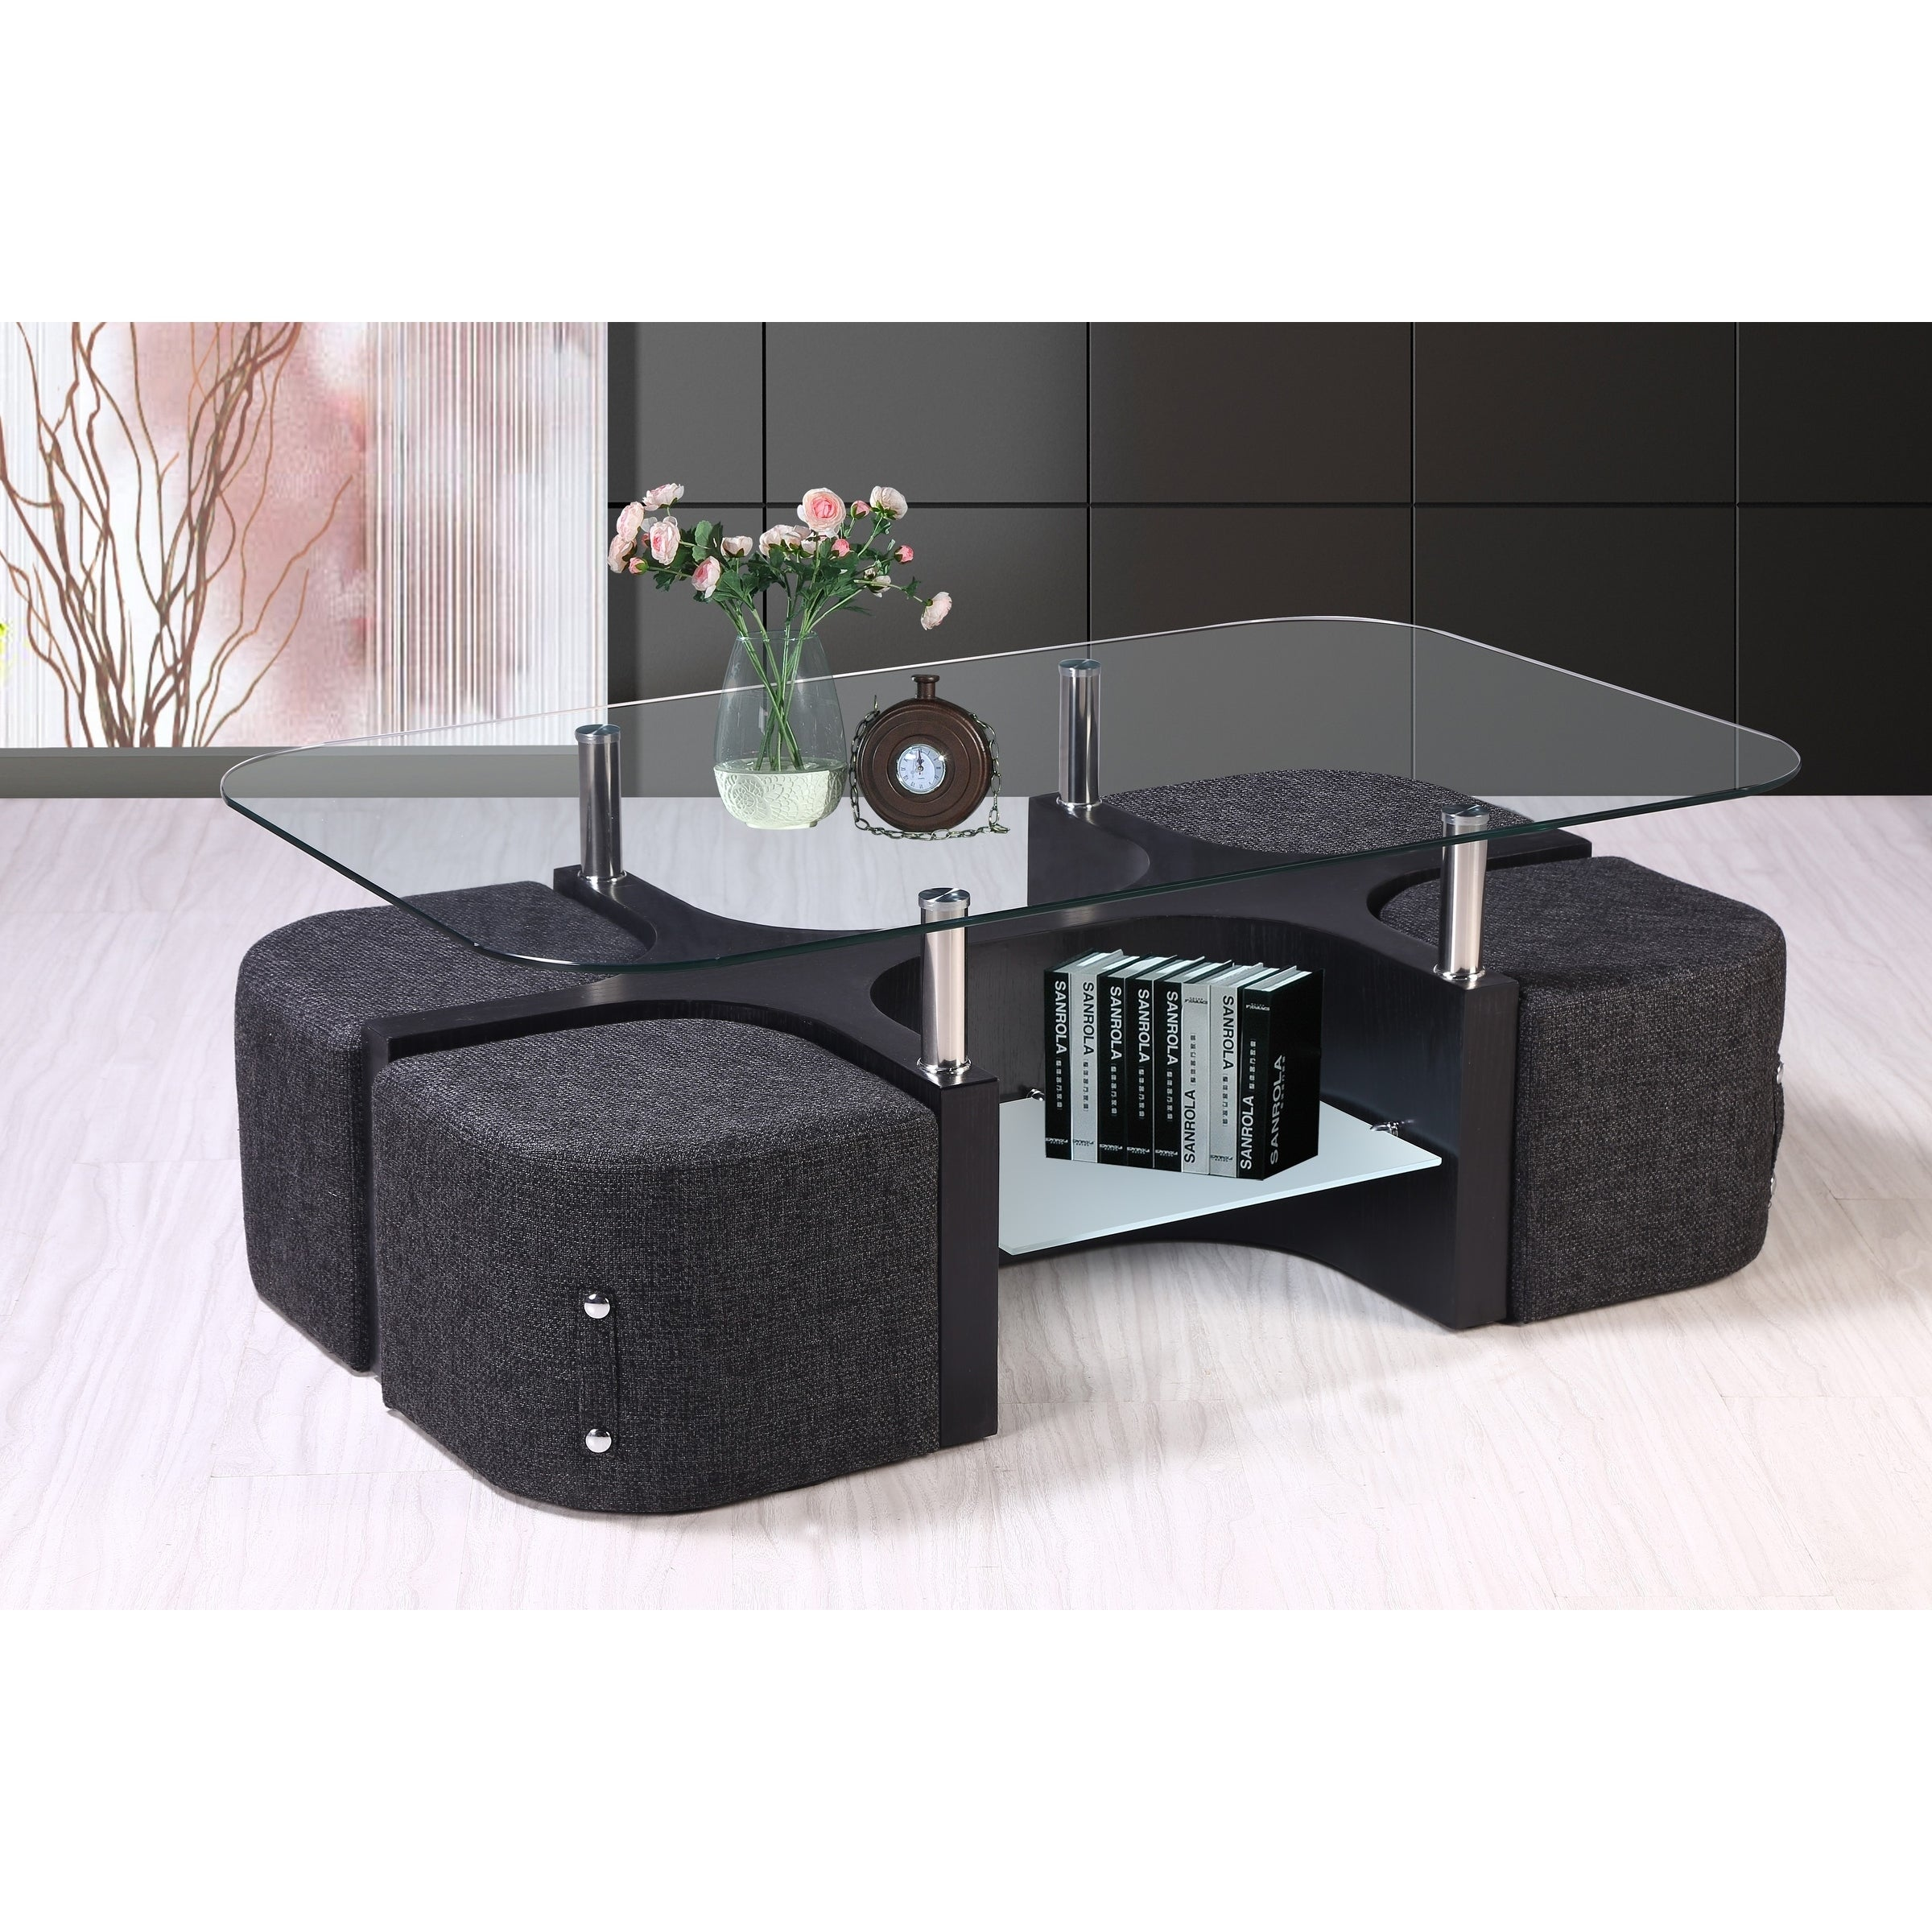 Coffee Table With Stools.Best Quality Furniture Glass Top Coffee Table With 4 Nesting Stools